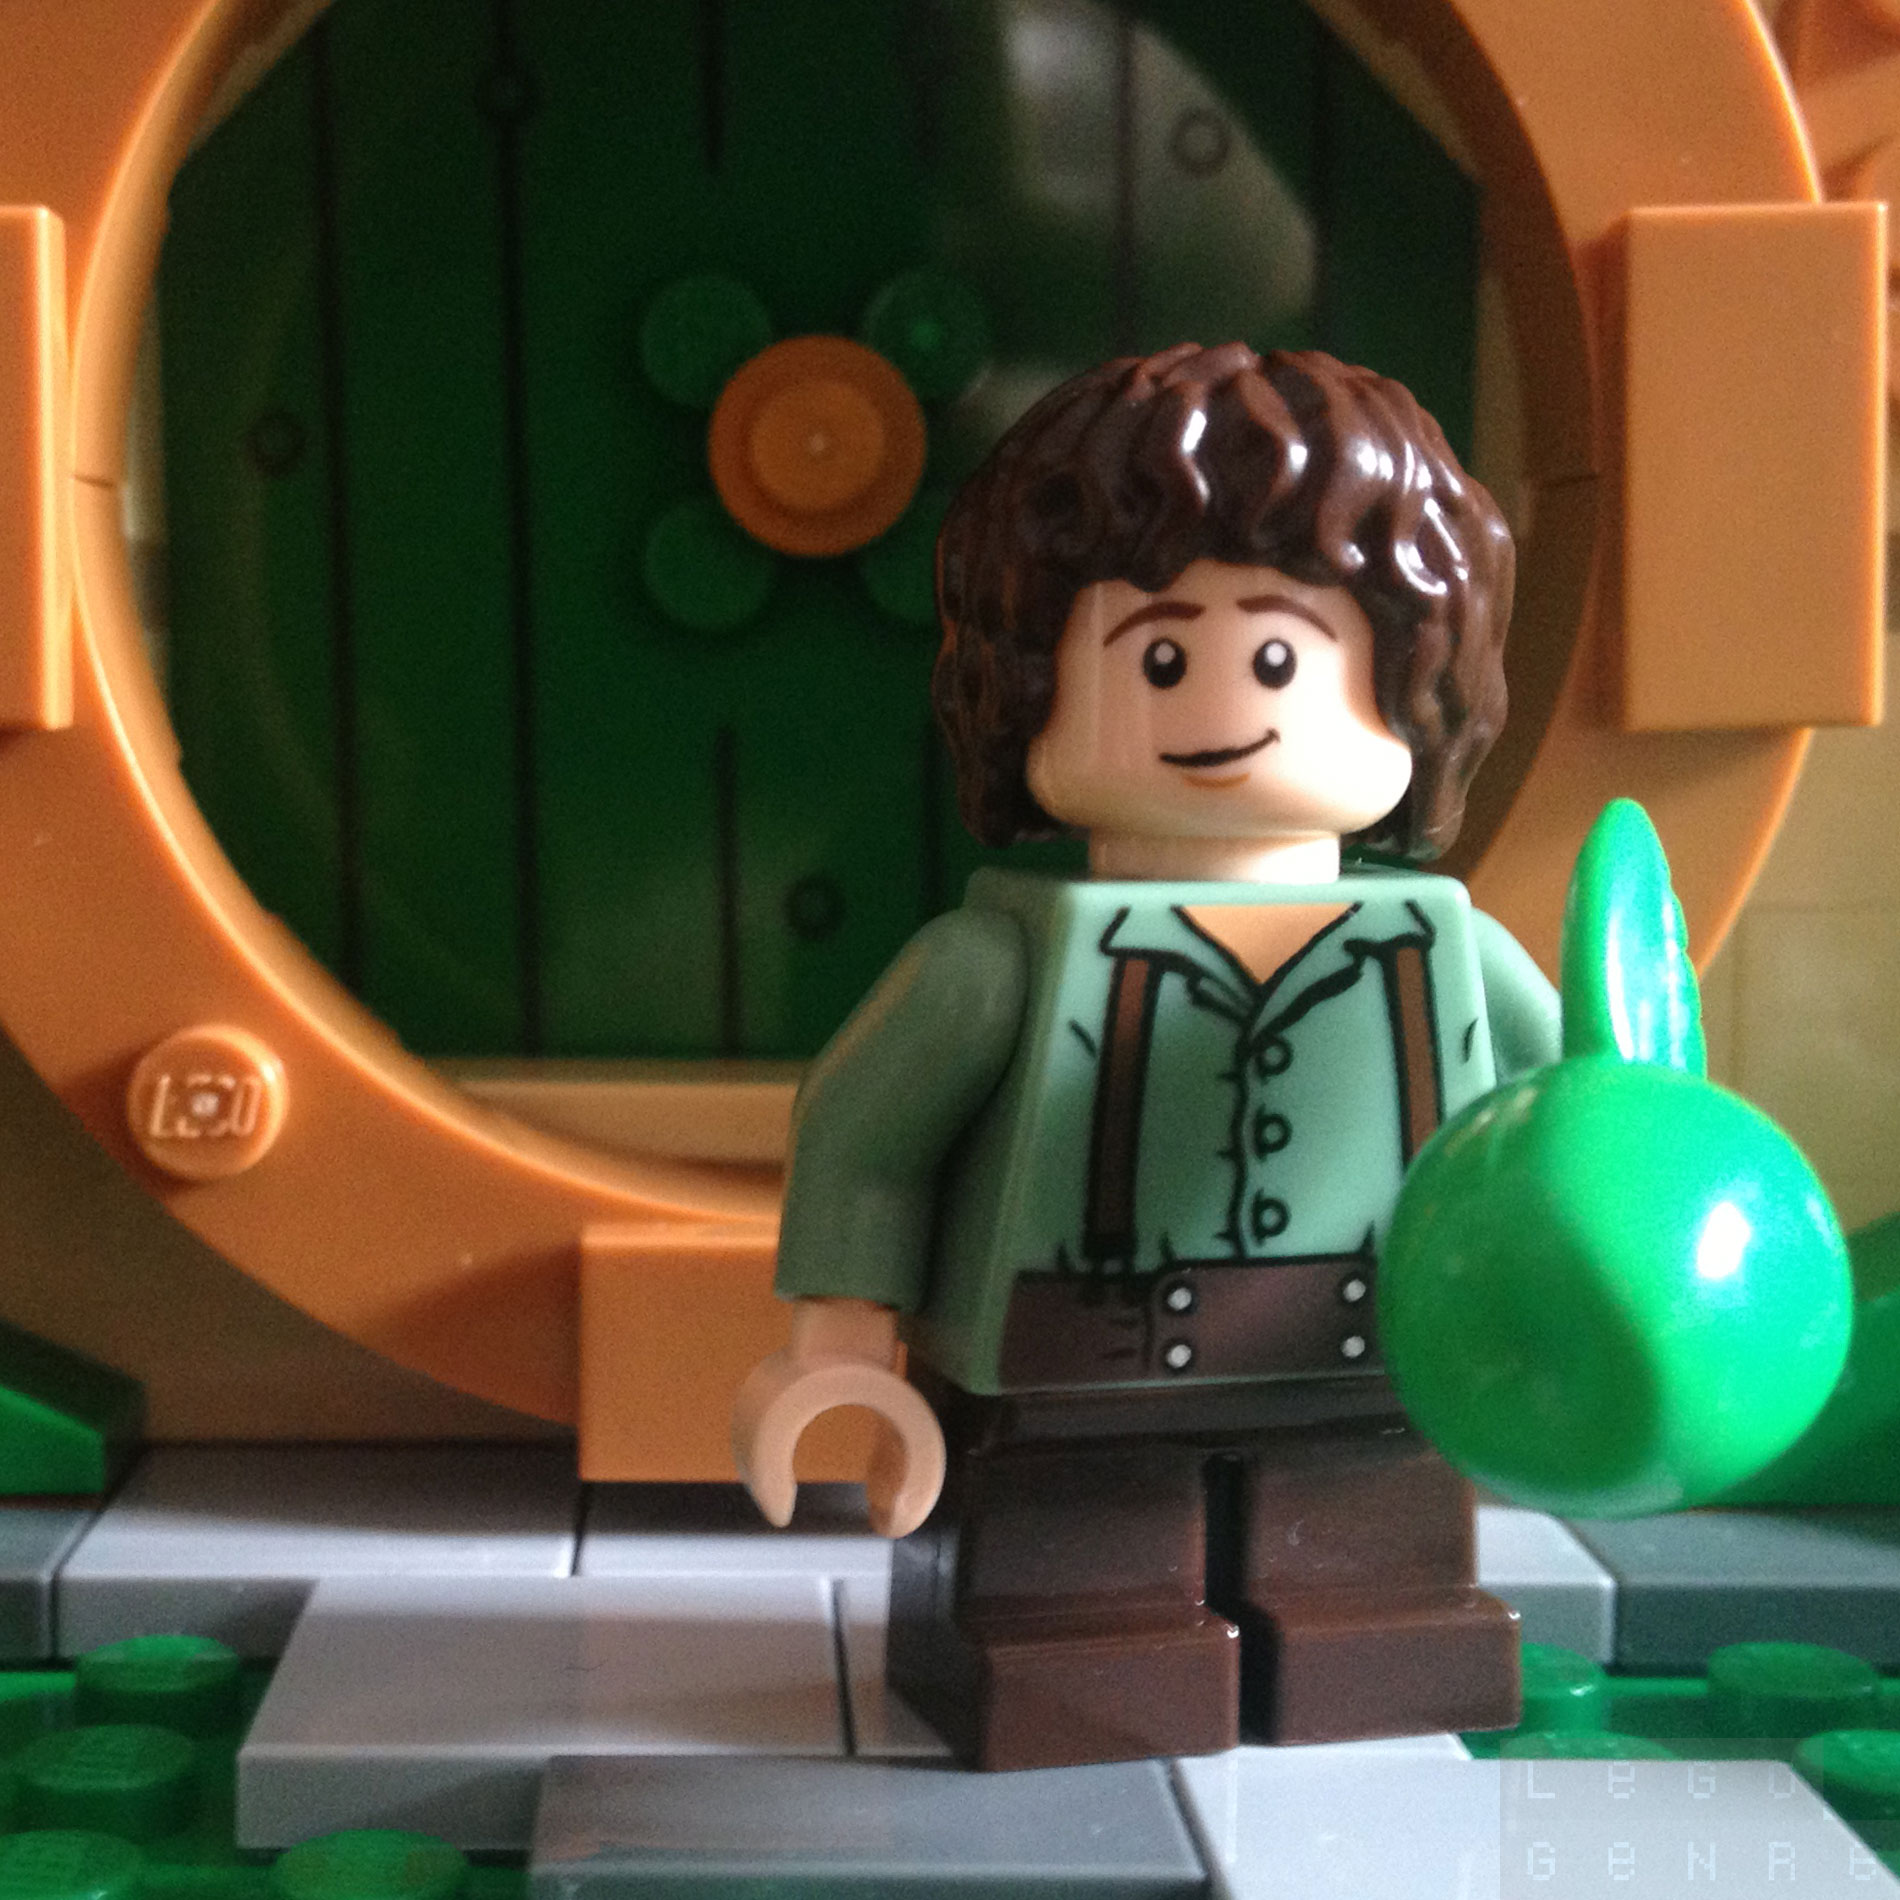 LegoGenre 00253: Frodo Baggins, Ring-bearer, of the Nine Fingers, Elf-friend, & Mayor; aka Mr Underhill.